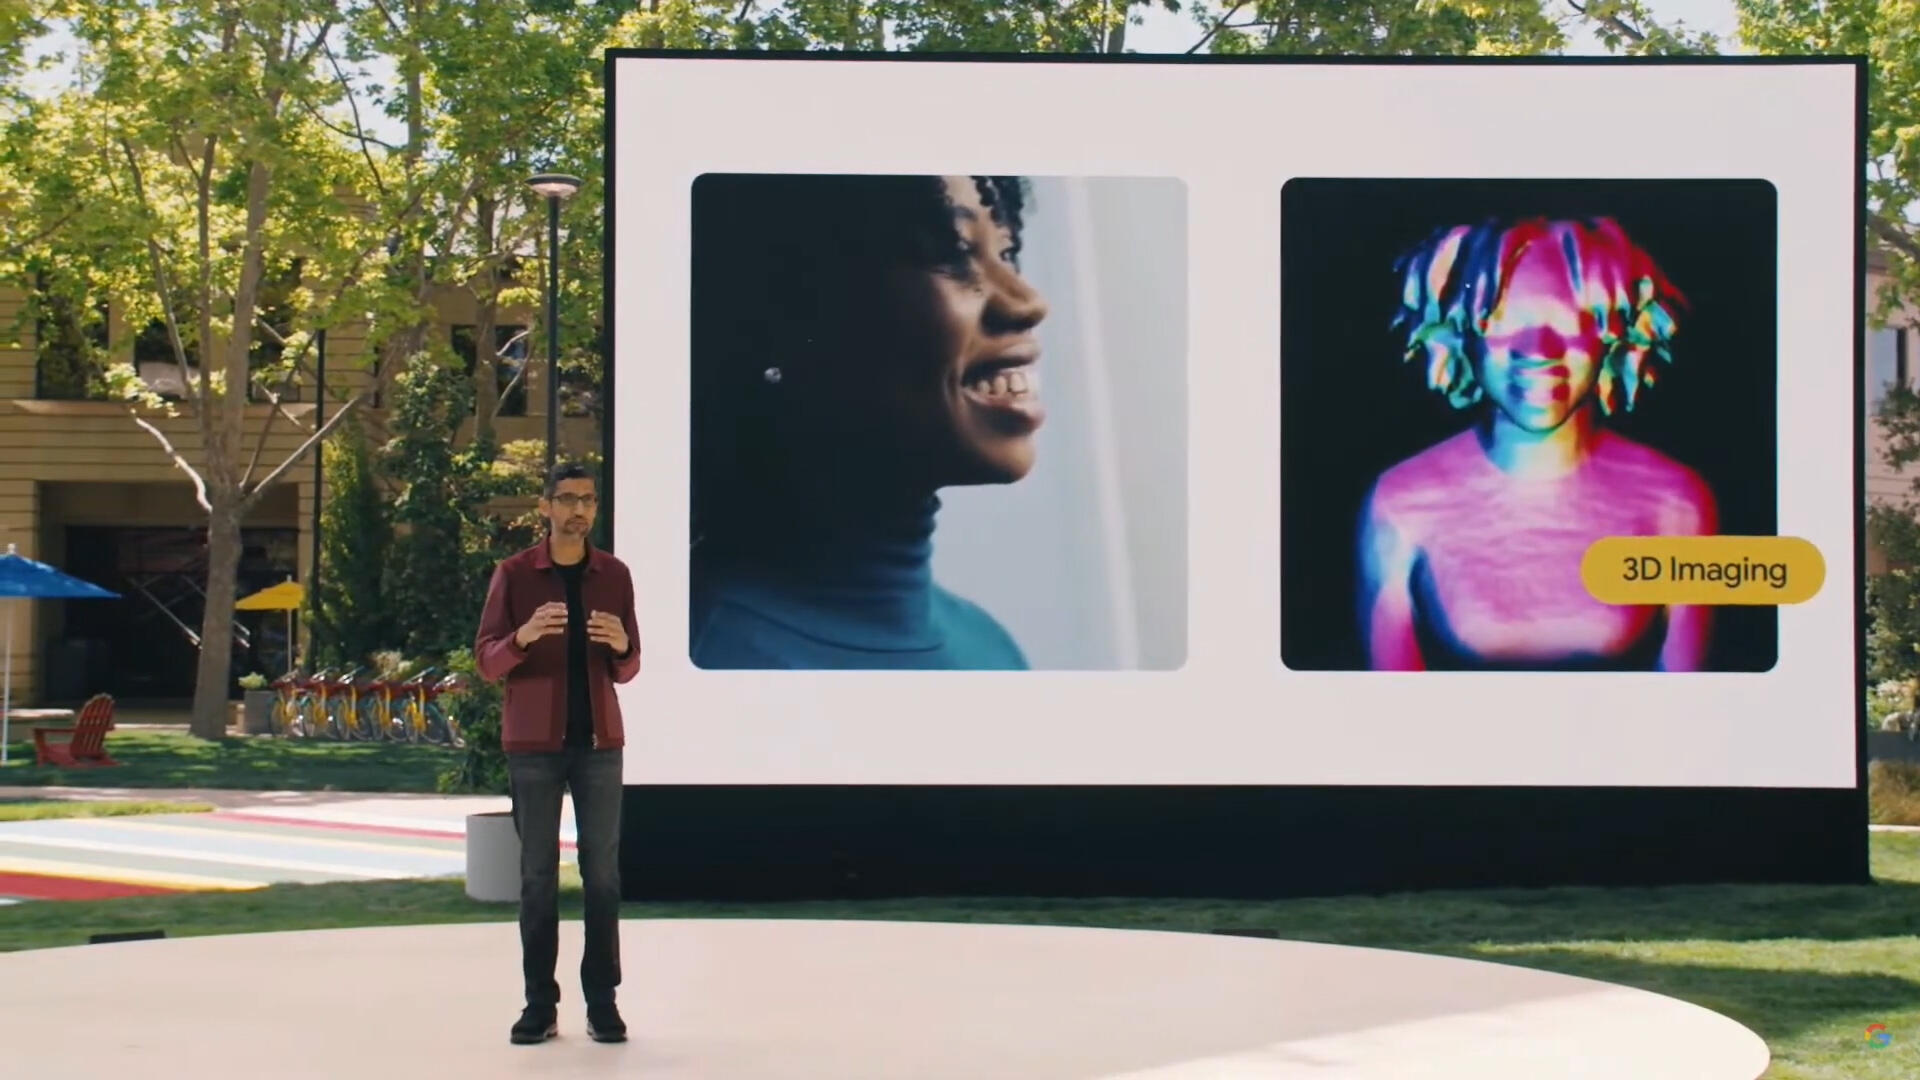 Video: Google reveals 3D video chat with Project Starline